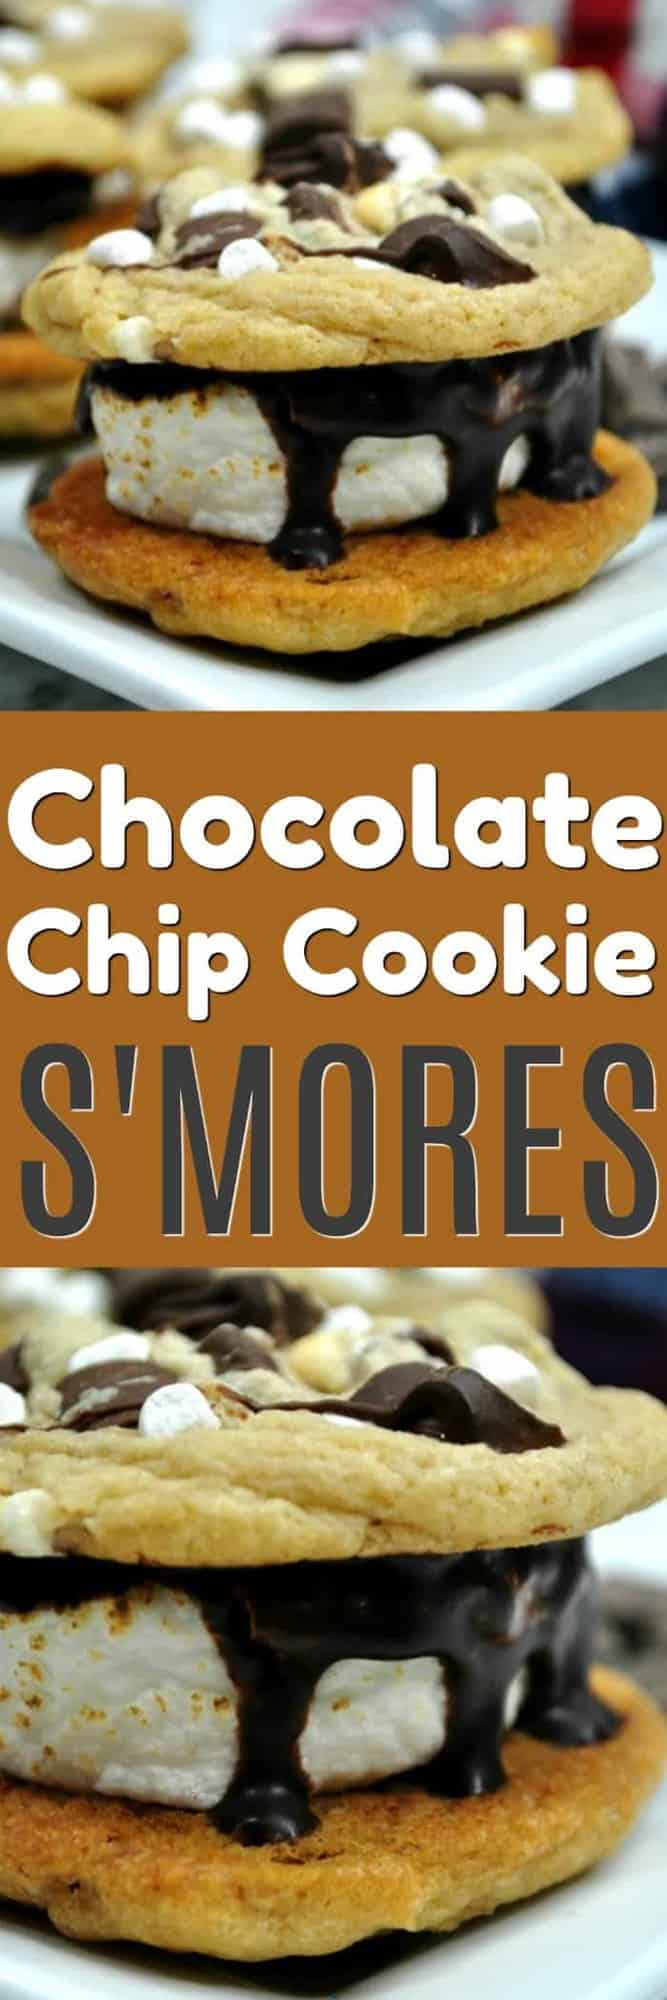 Chocolate Chip Cookies S'mores bring two of my favorite things together. Roasted marshmallows smooshed between to warm and delicious chocolate chip cookies and top it off with a drizzle of chocolate ganache. It doesn't get much better than this!